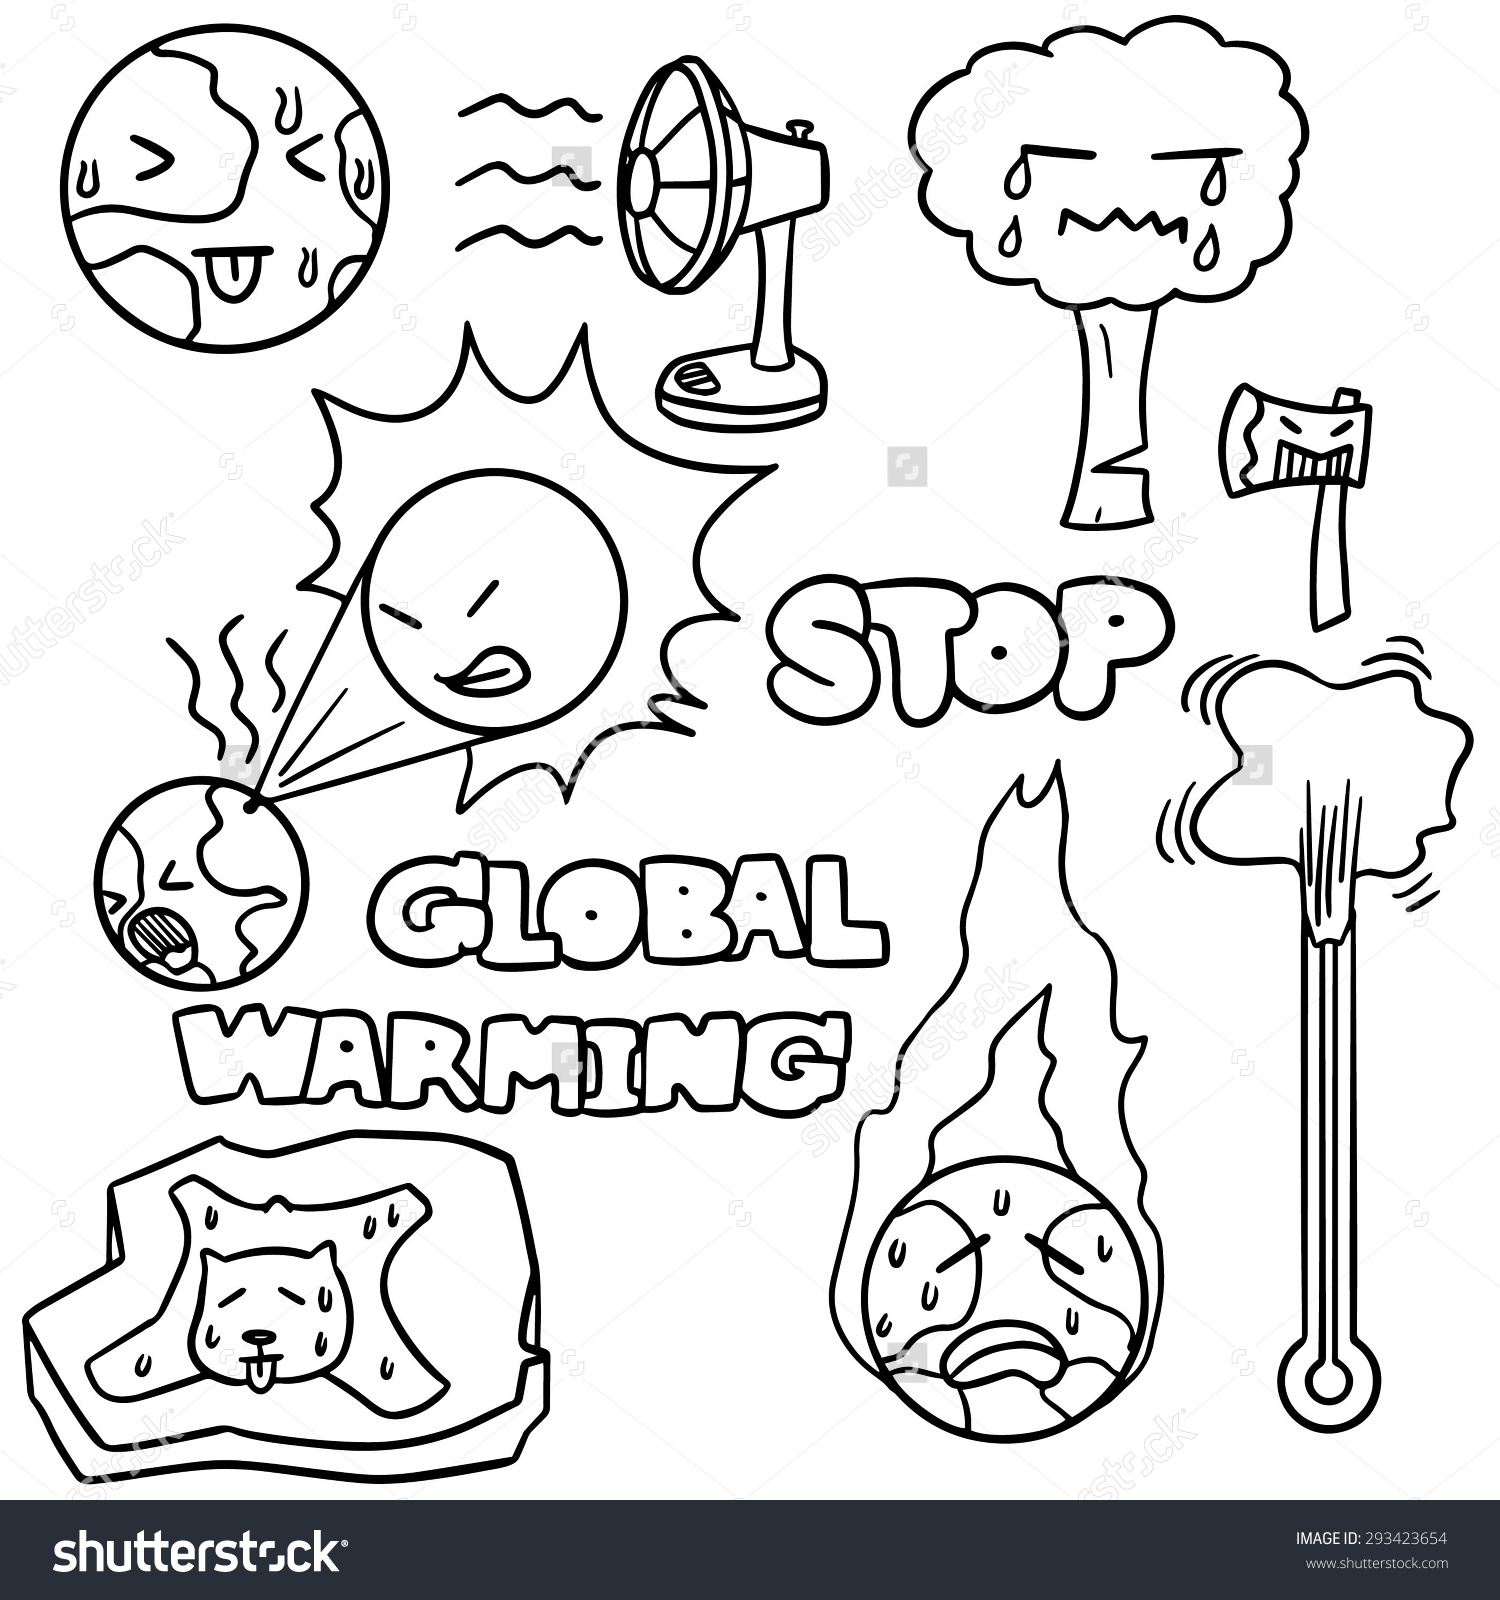 Global warming drawing at getdrawings free for personal use global warming drawing 15 global warming drawing